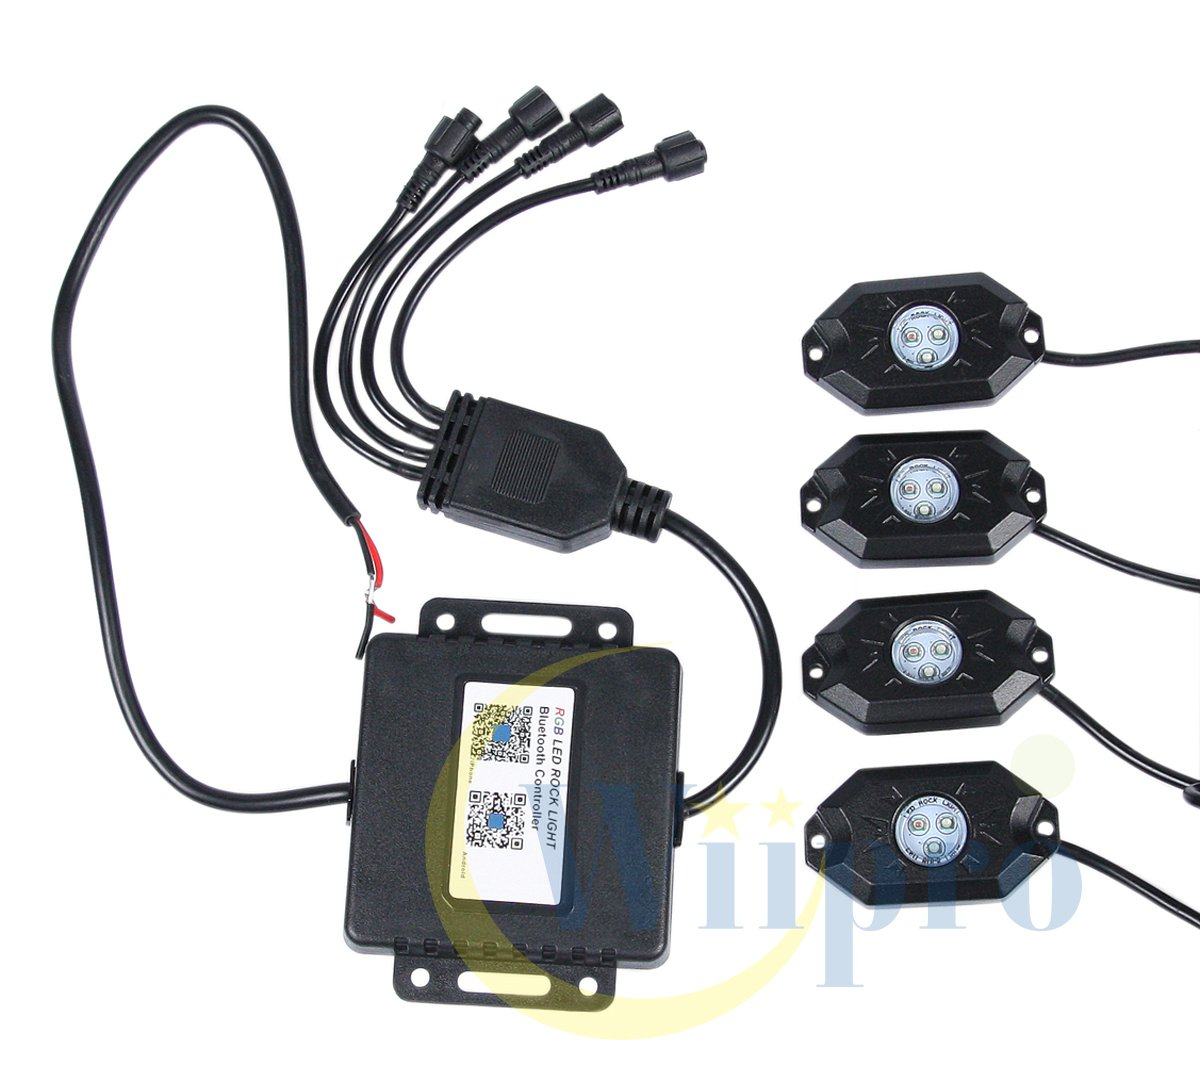 4 Pods Multicolor Neon Underglow Lighting APP Bluetooth Control /& Timing /& Flashing /& Music Mode for JEEP Off Road Truck Car ATV SUV Yacht Boat 4332998144 Wiipro LED RGB Rock Lights Kit